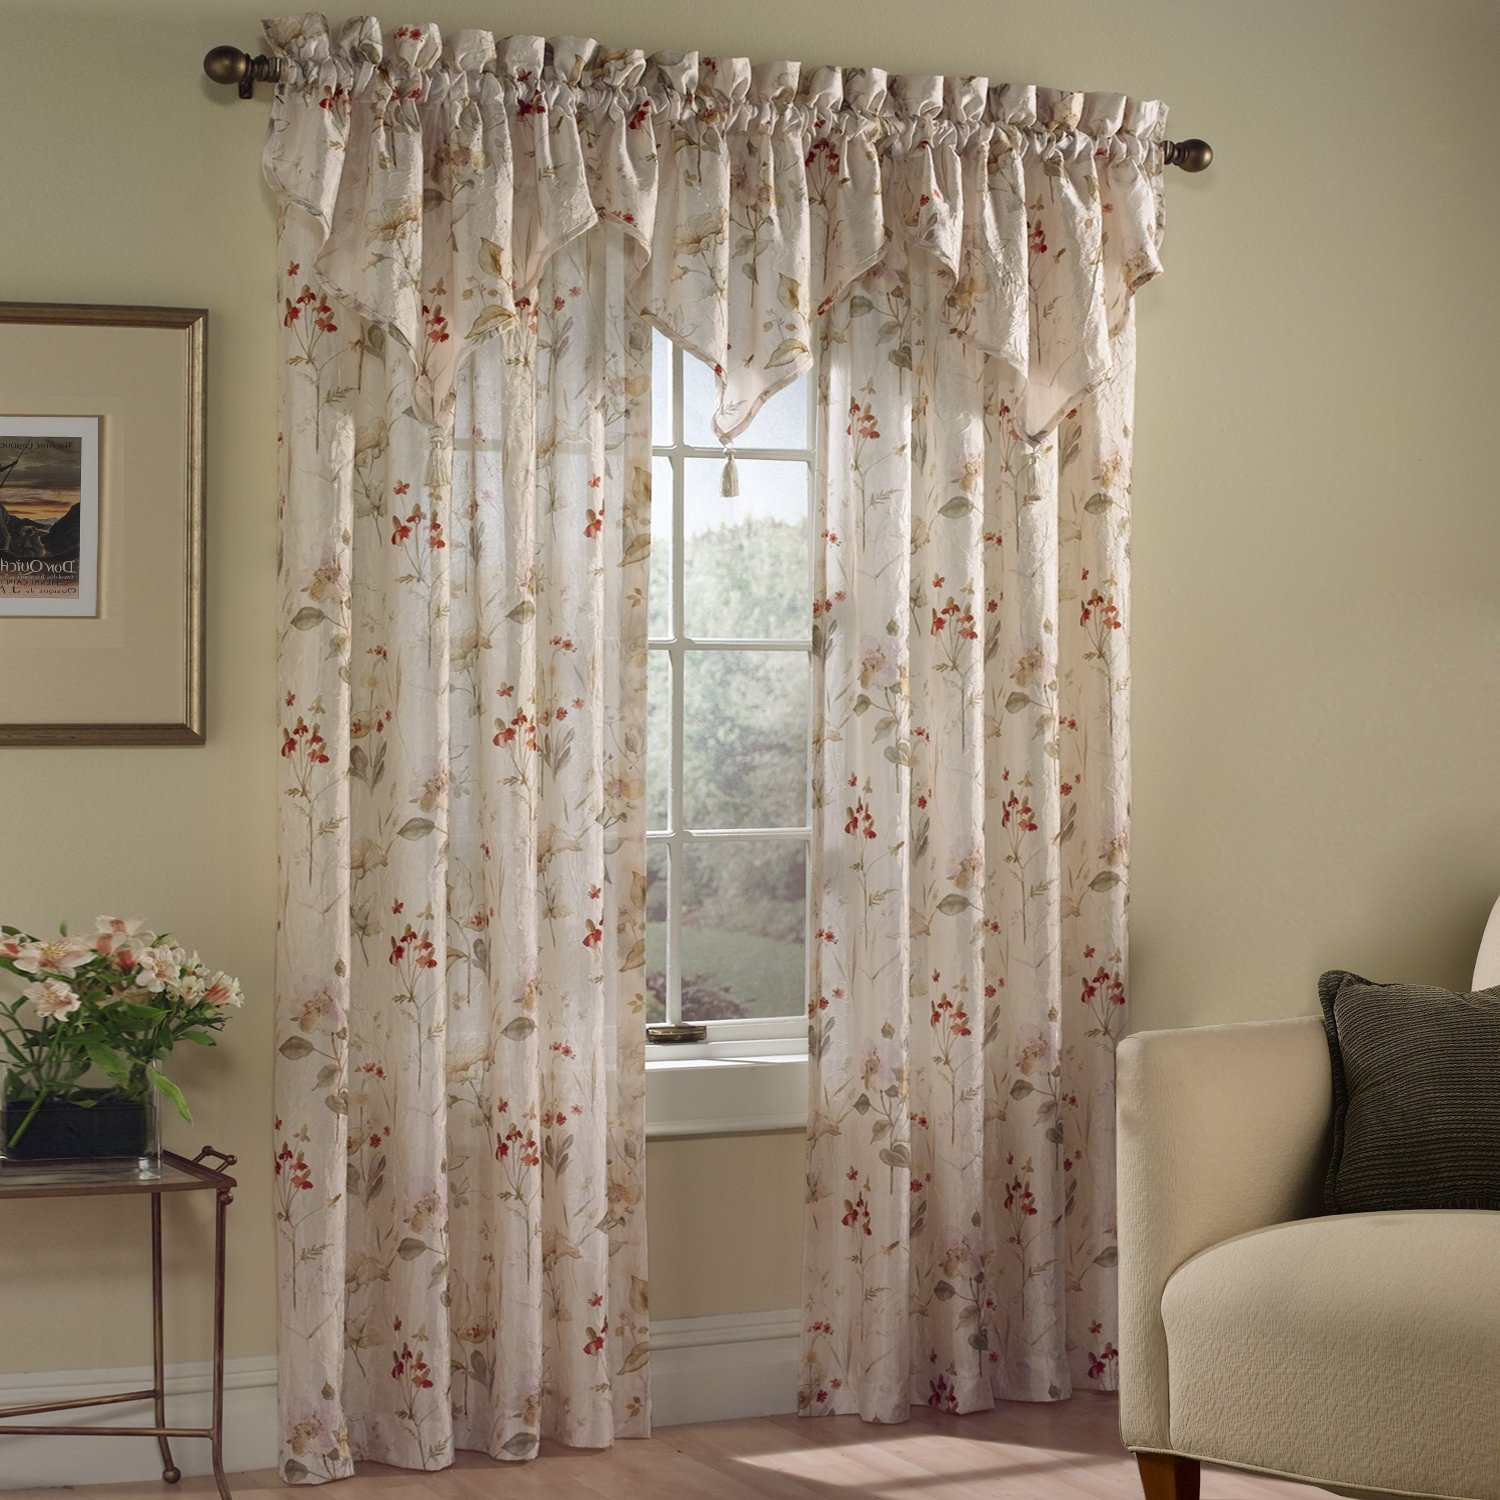 American Curtain and Home Tina Window Treatment Valance, 48-Inch by 16-Inch, Multicolor by